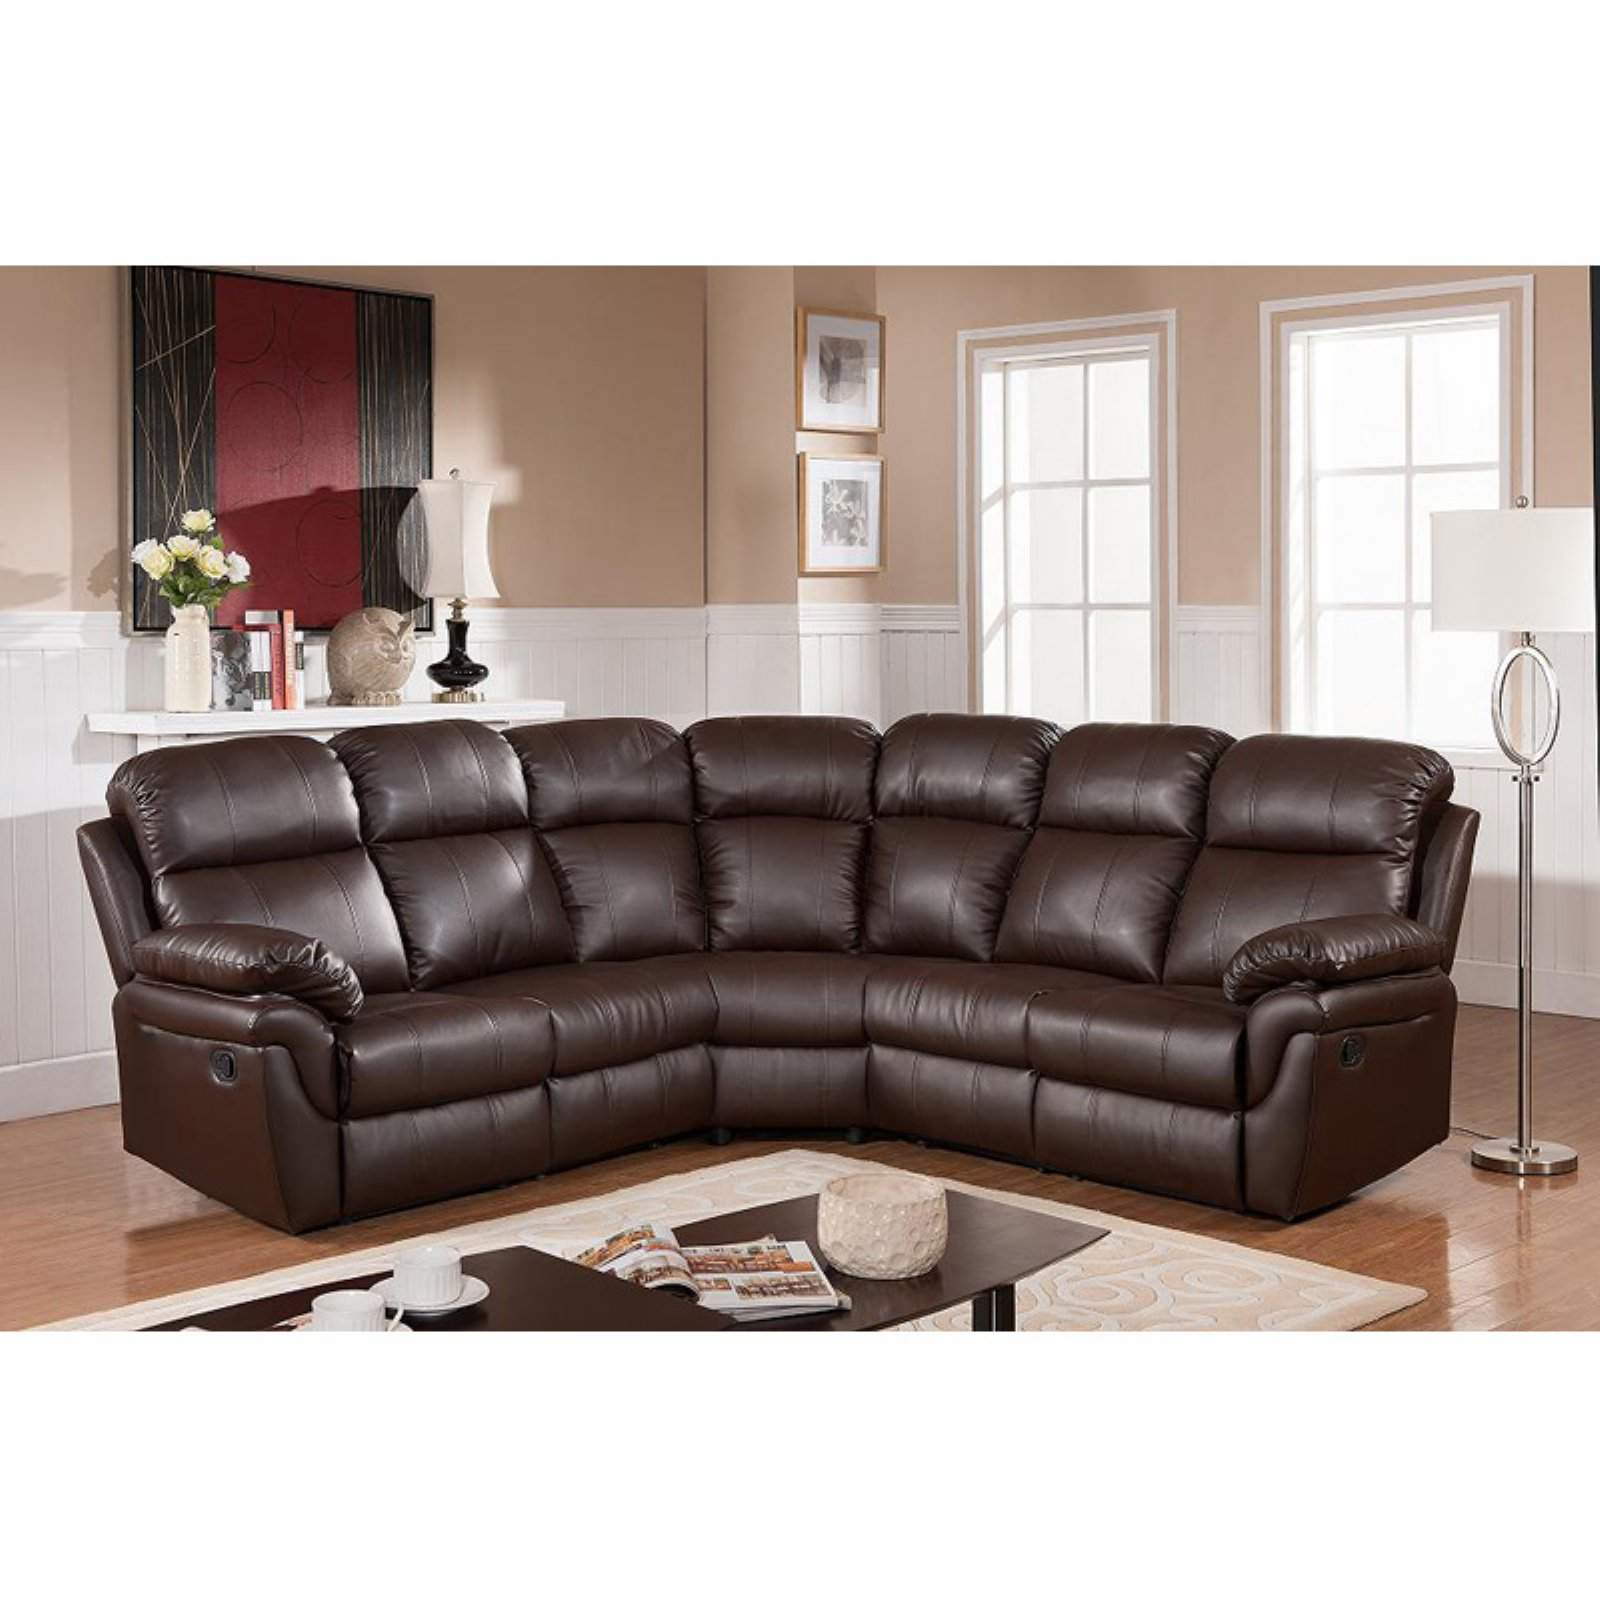 Sofa Frankfurt Frankfurt Sectional Sofa With Two Recliners